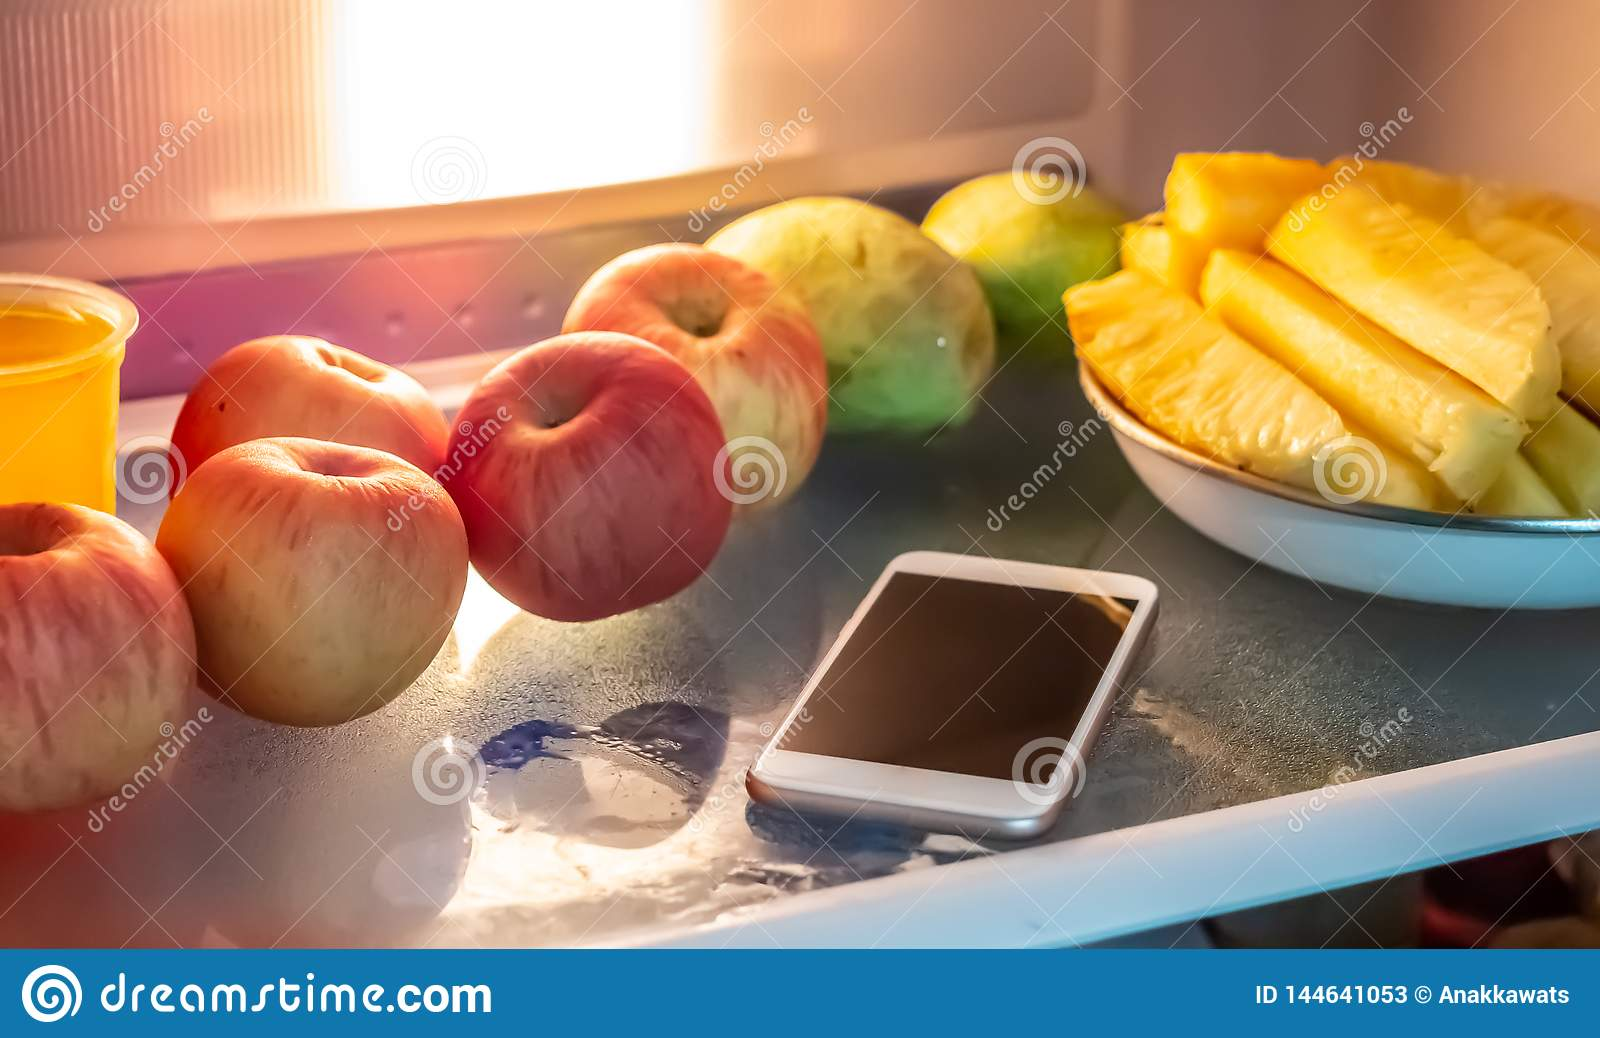 Phone in the refrigerator.